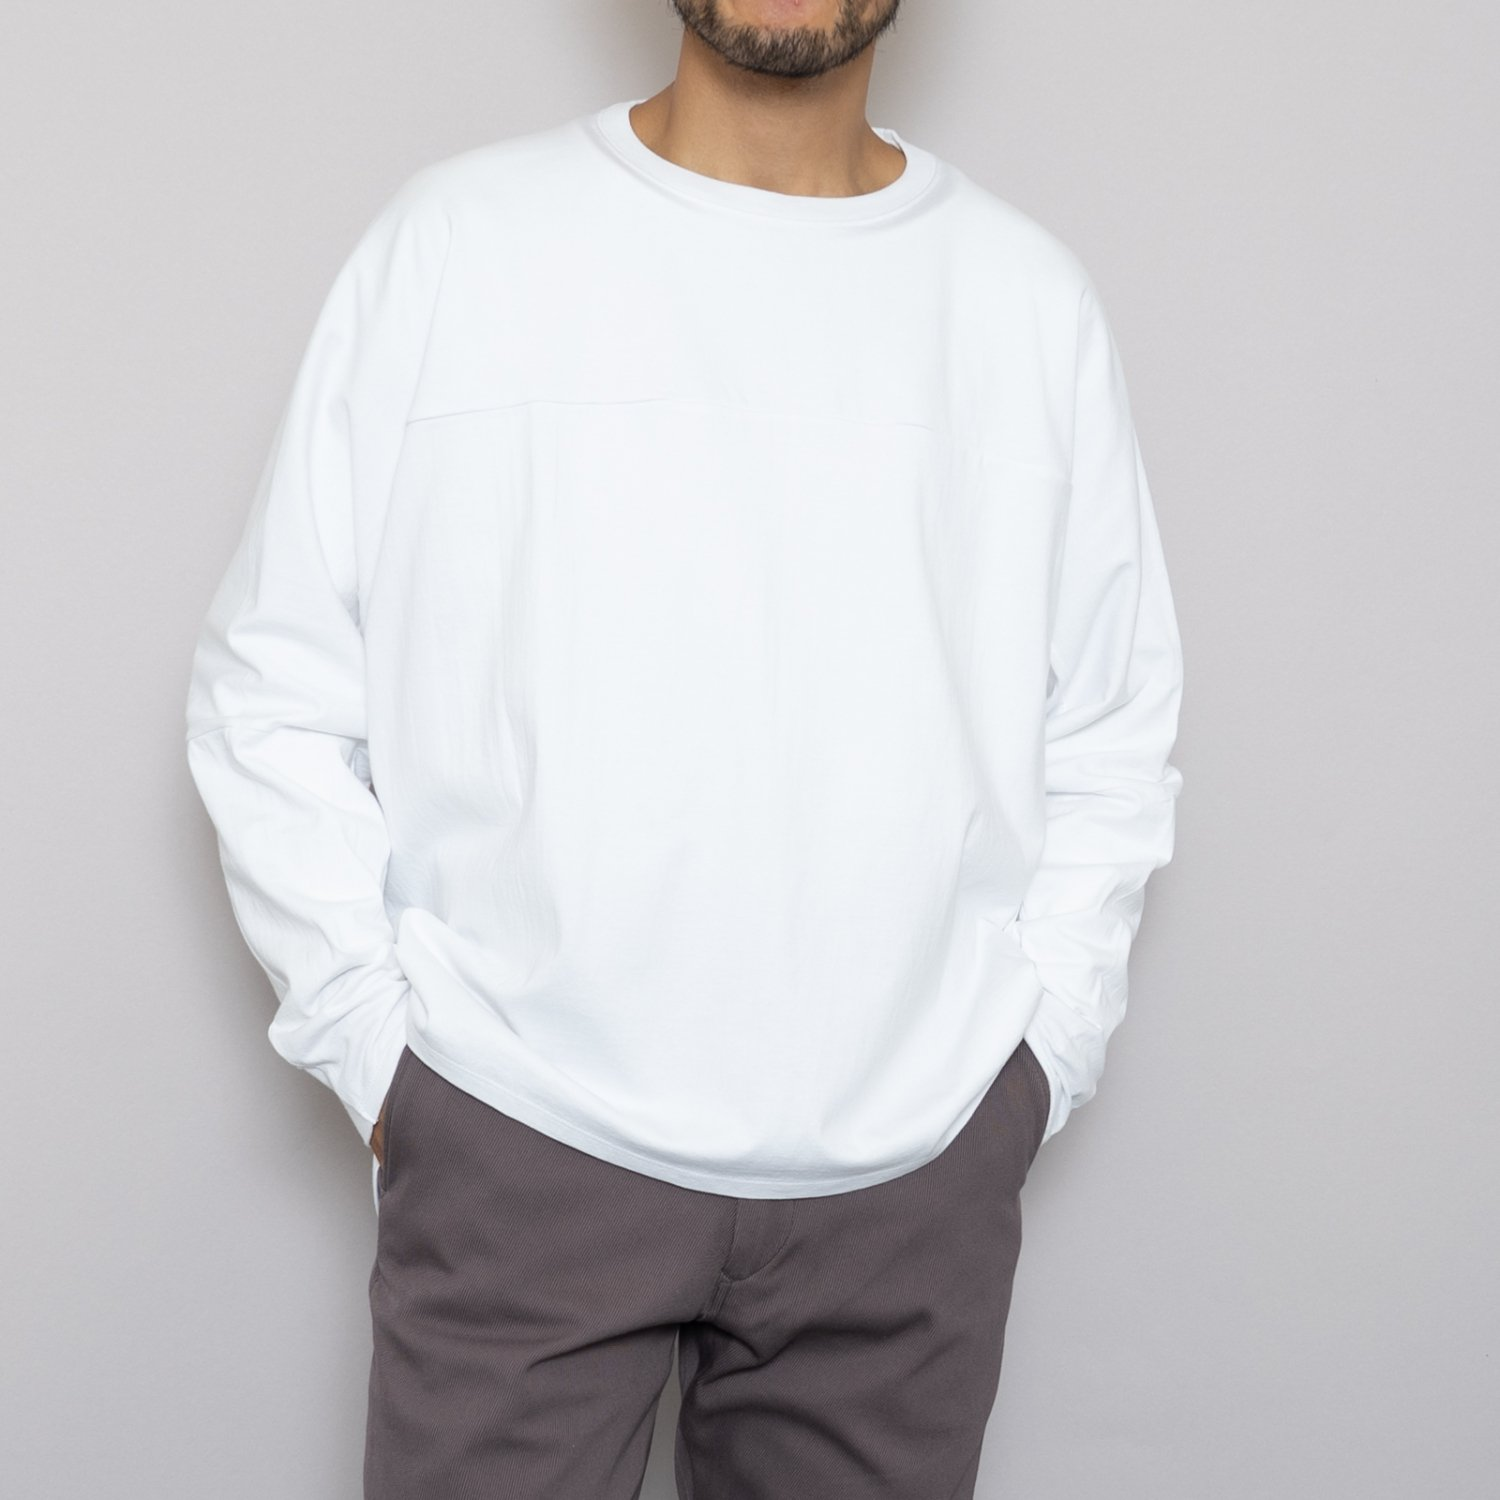 Graphpaper * PRE_ for Graphpaper Oversized FTB L/S Tee * White